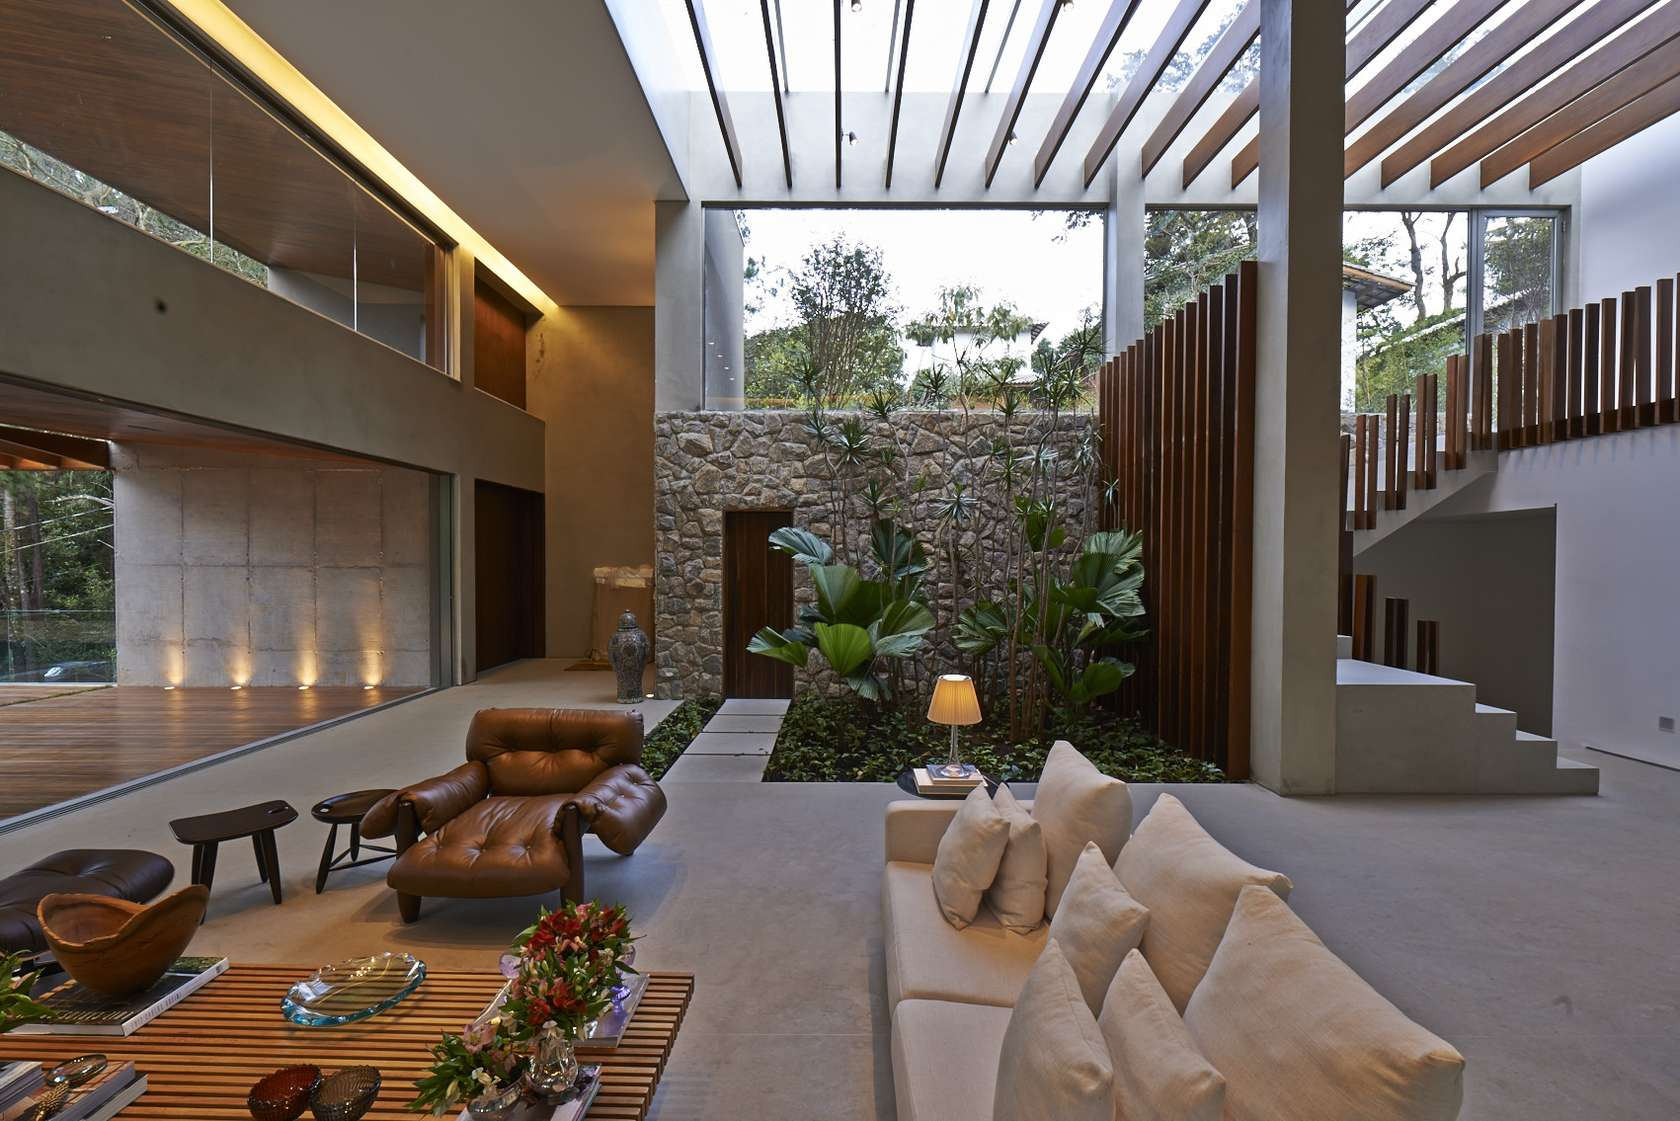 House and garden interiors - Luxurious Home Uses Wood And Stone Elements To Marry Interiors And Exteriors